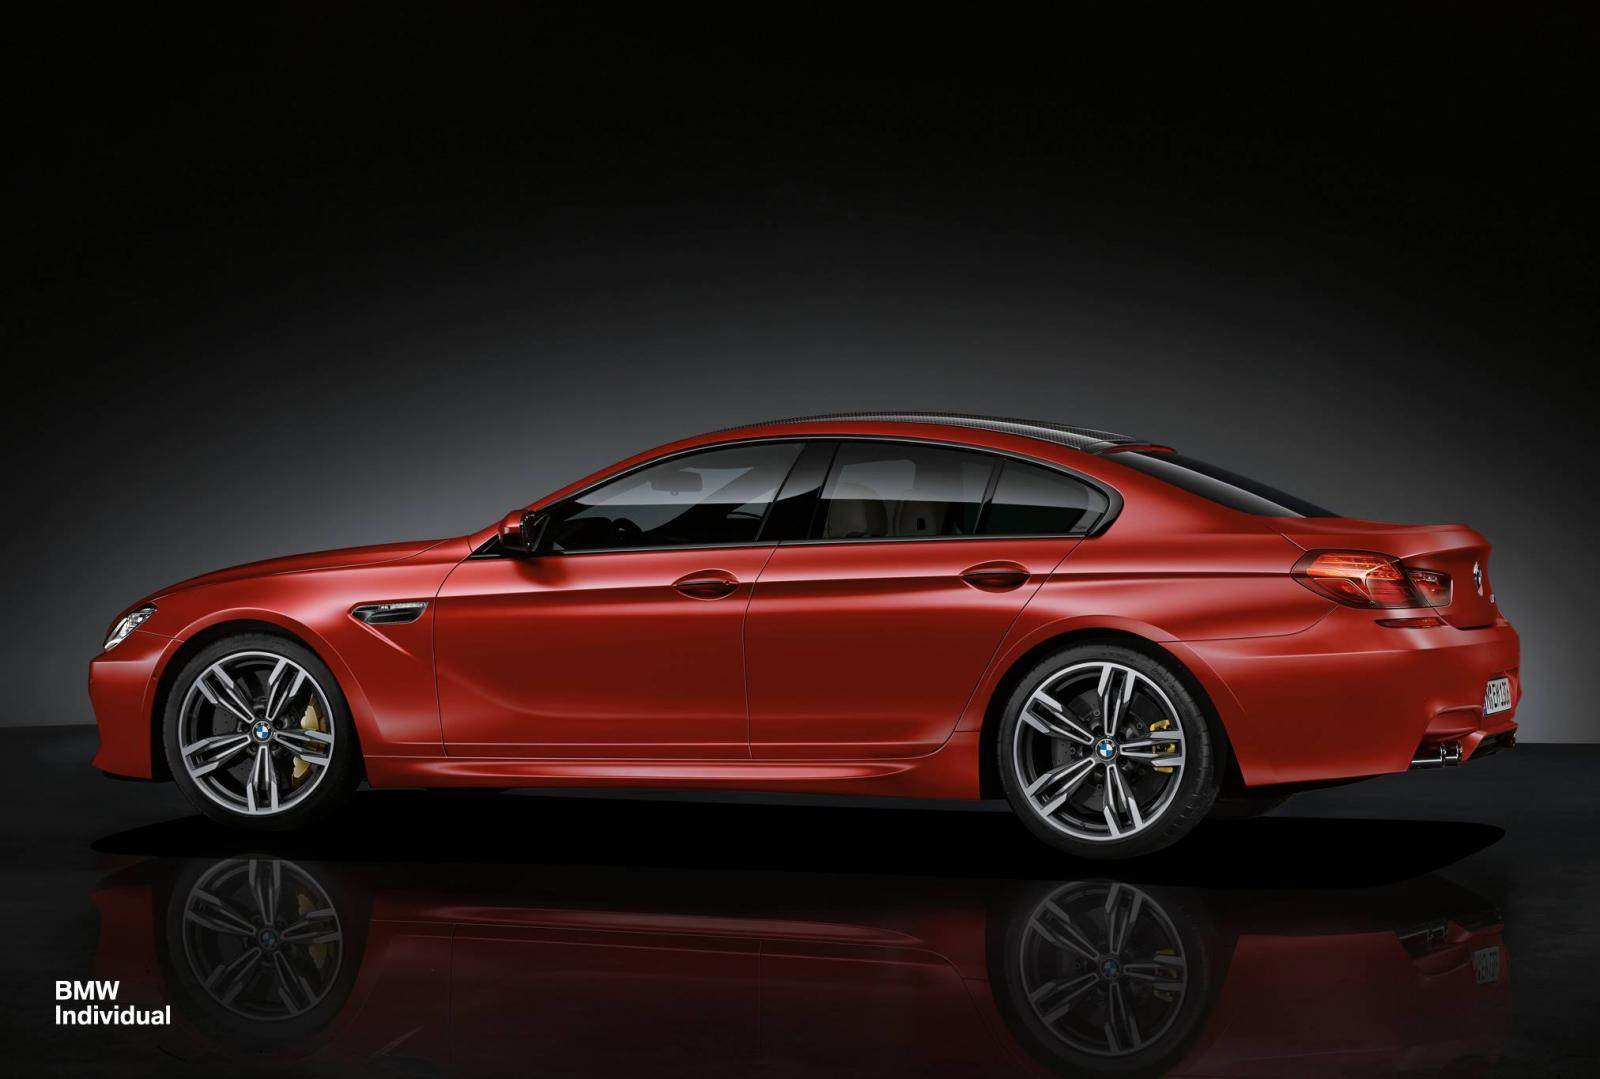 official bmw m6 gran coupe by bmw individual gtspirit. Black Bedroom Furniture Sets. Home Design Ideas